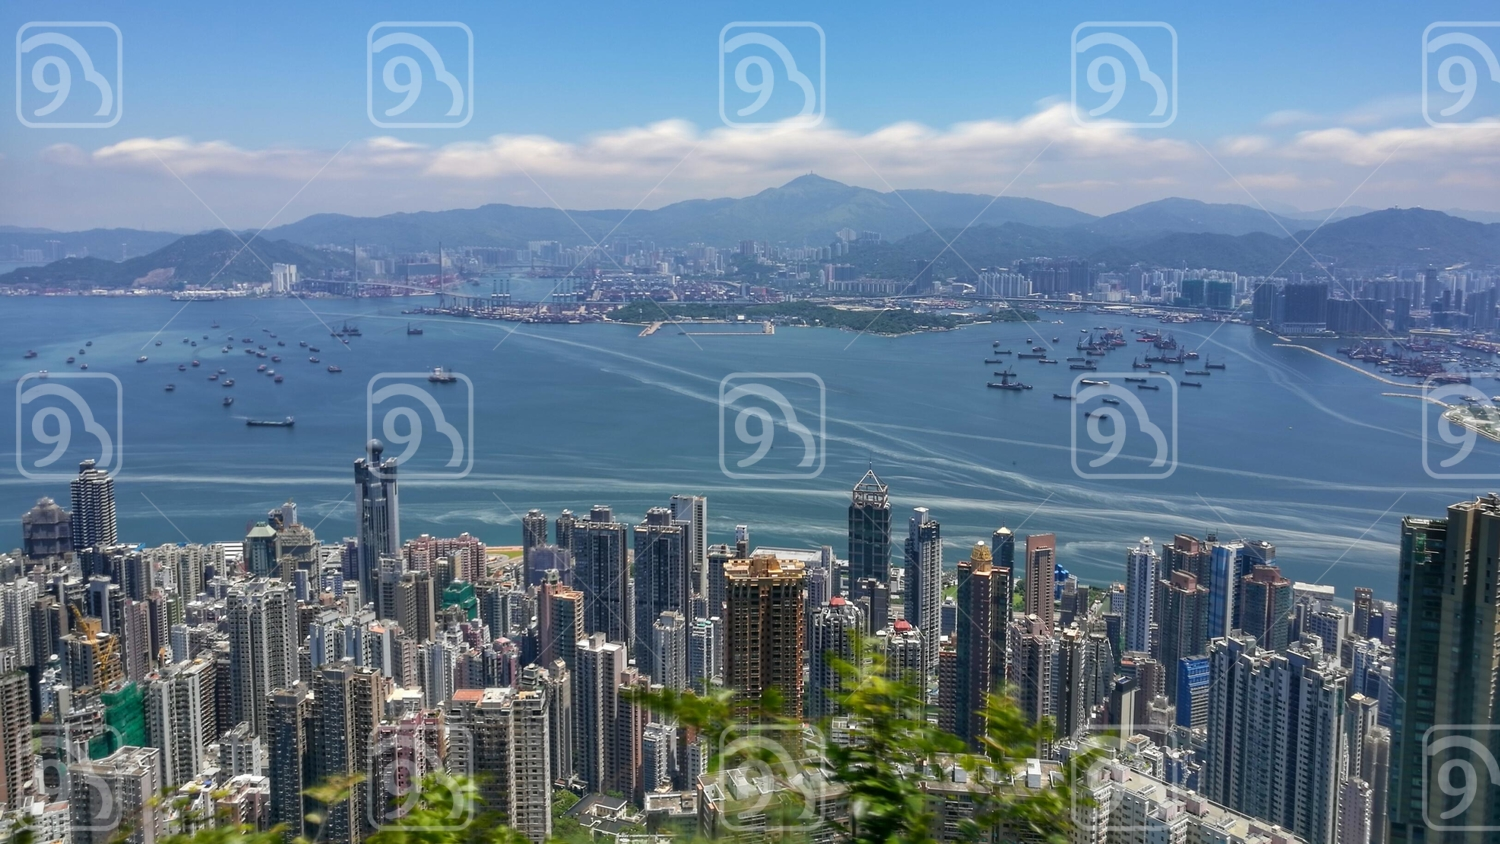 View from Peak of Hong Kong